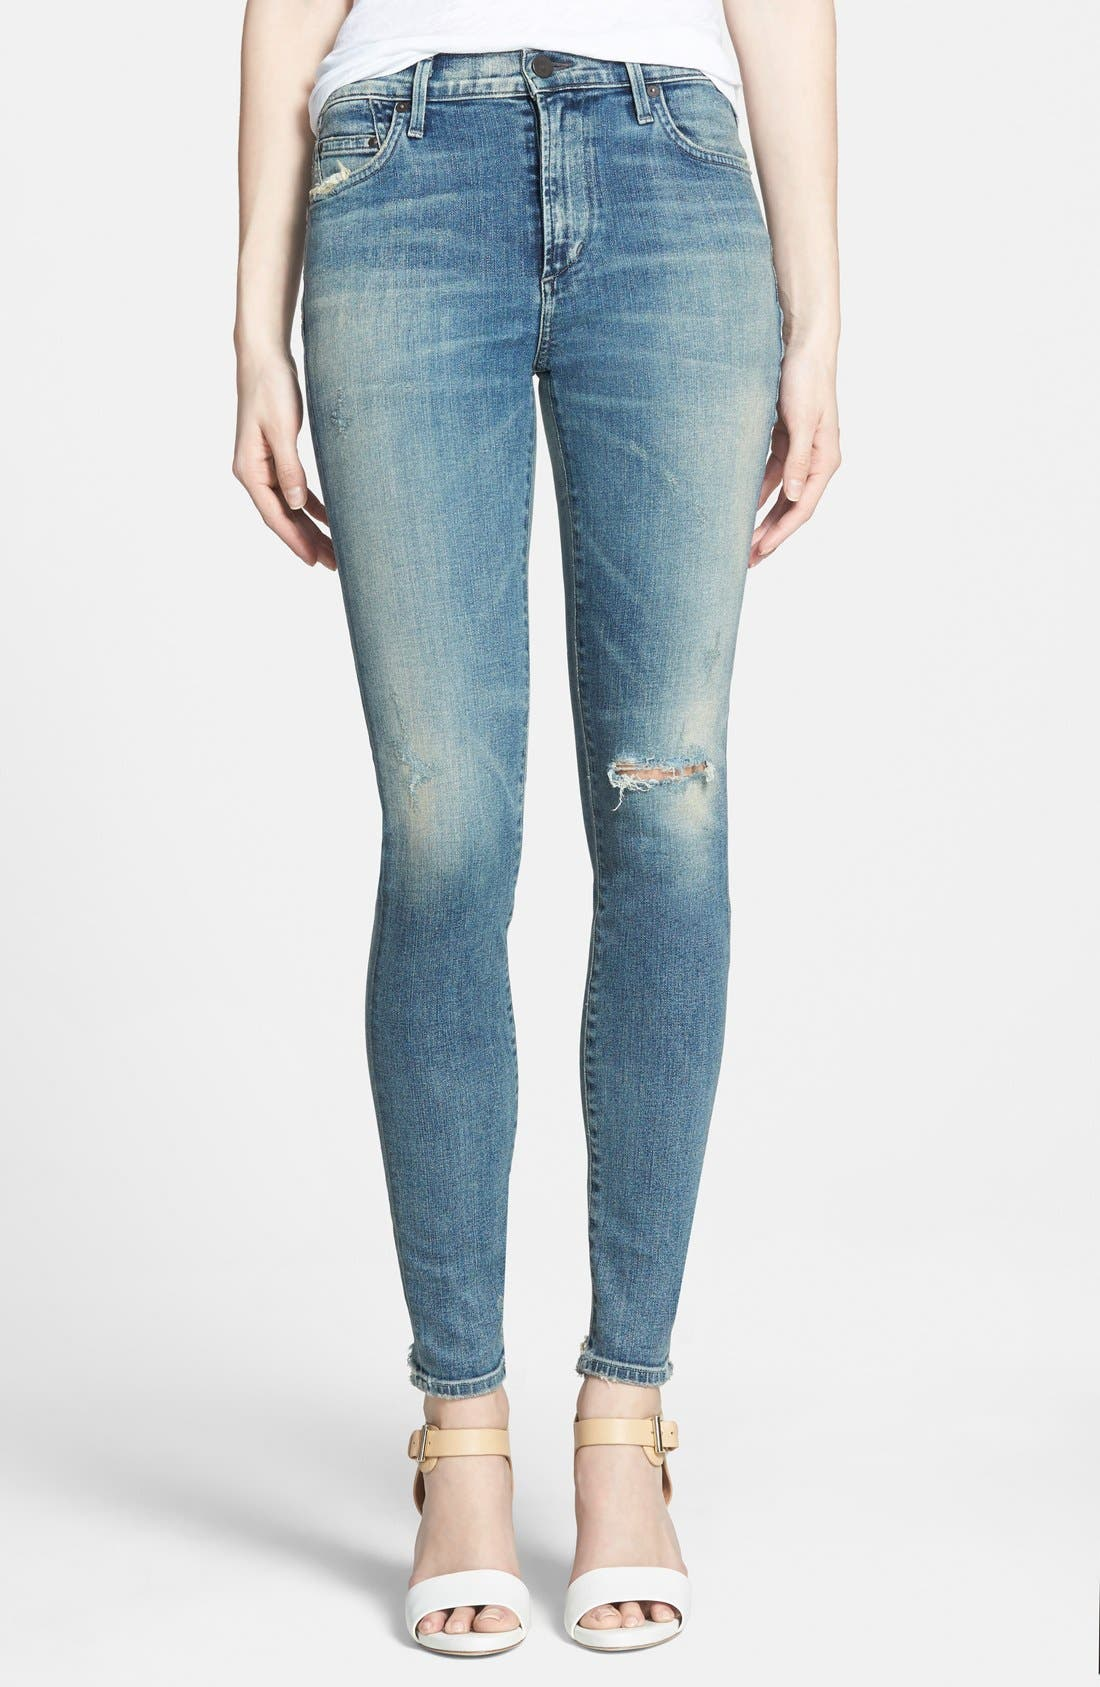 Alternate Image 1 Selected - Citizens of Humanity 'Rocket' High Rise Skinny Jeans (Stage Coach)